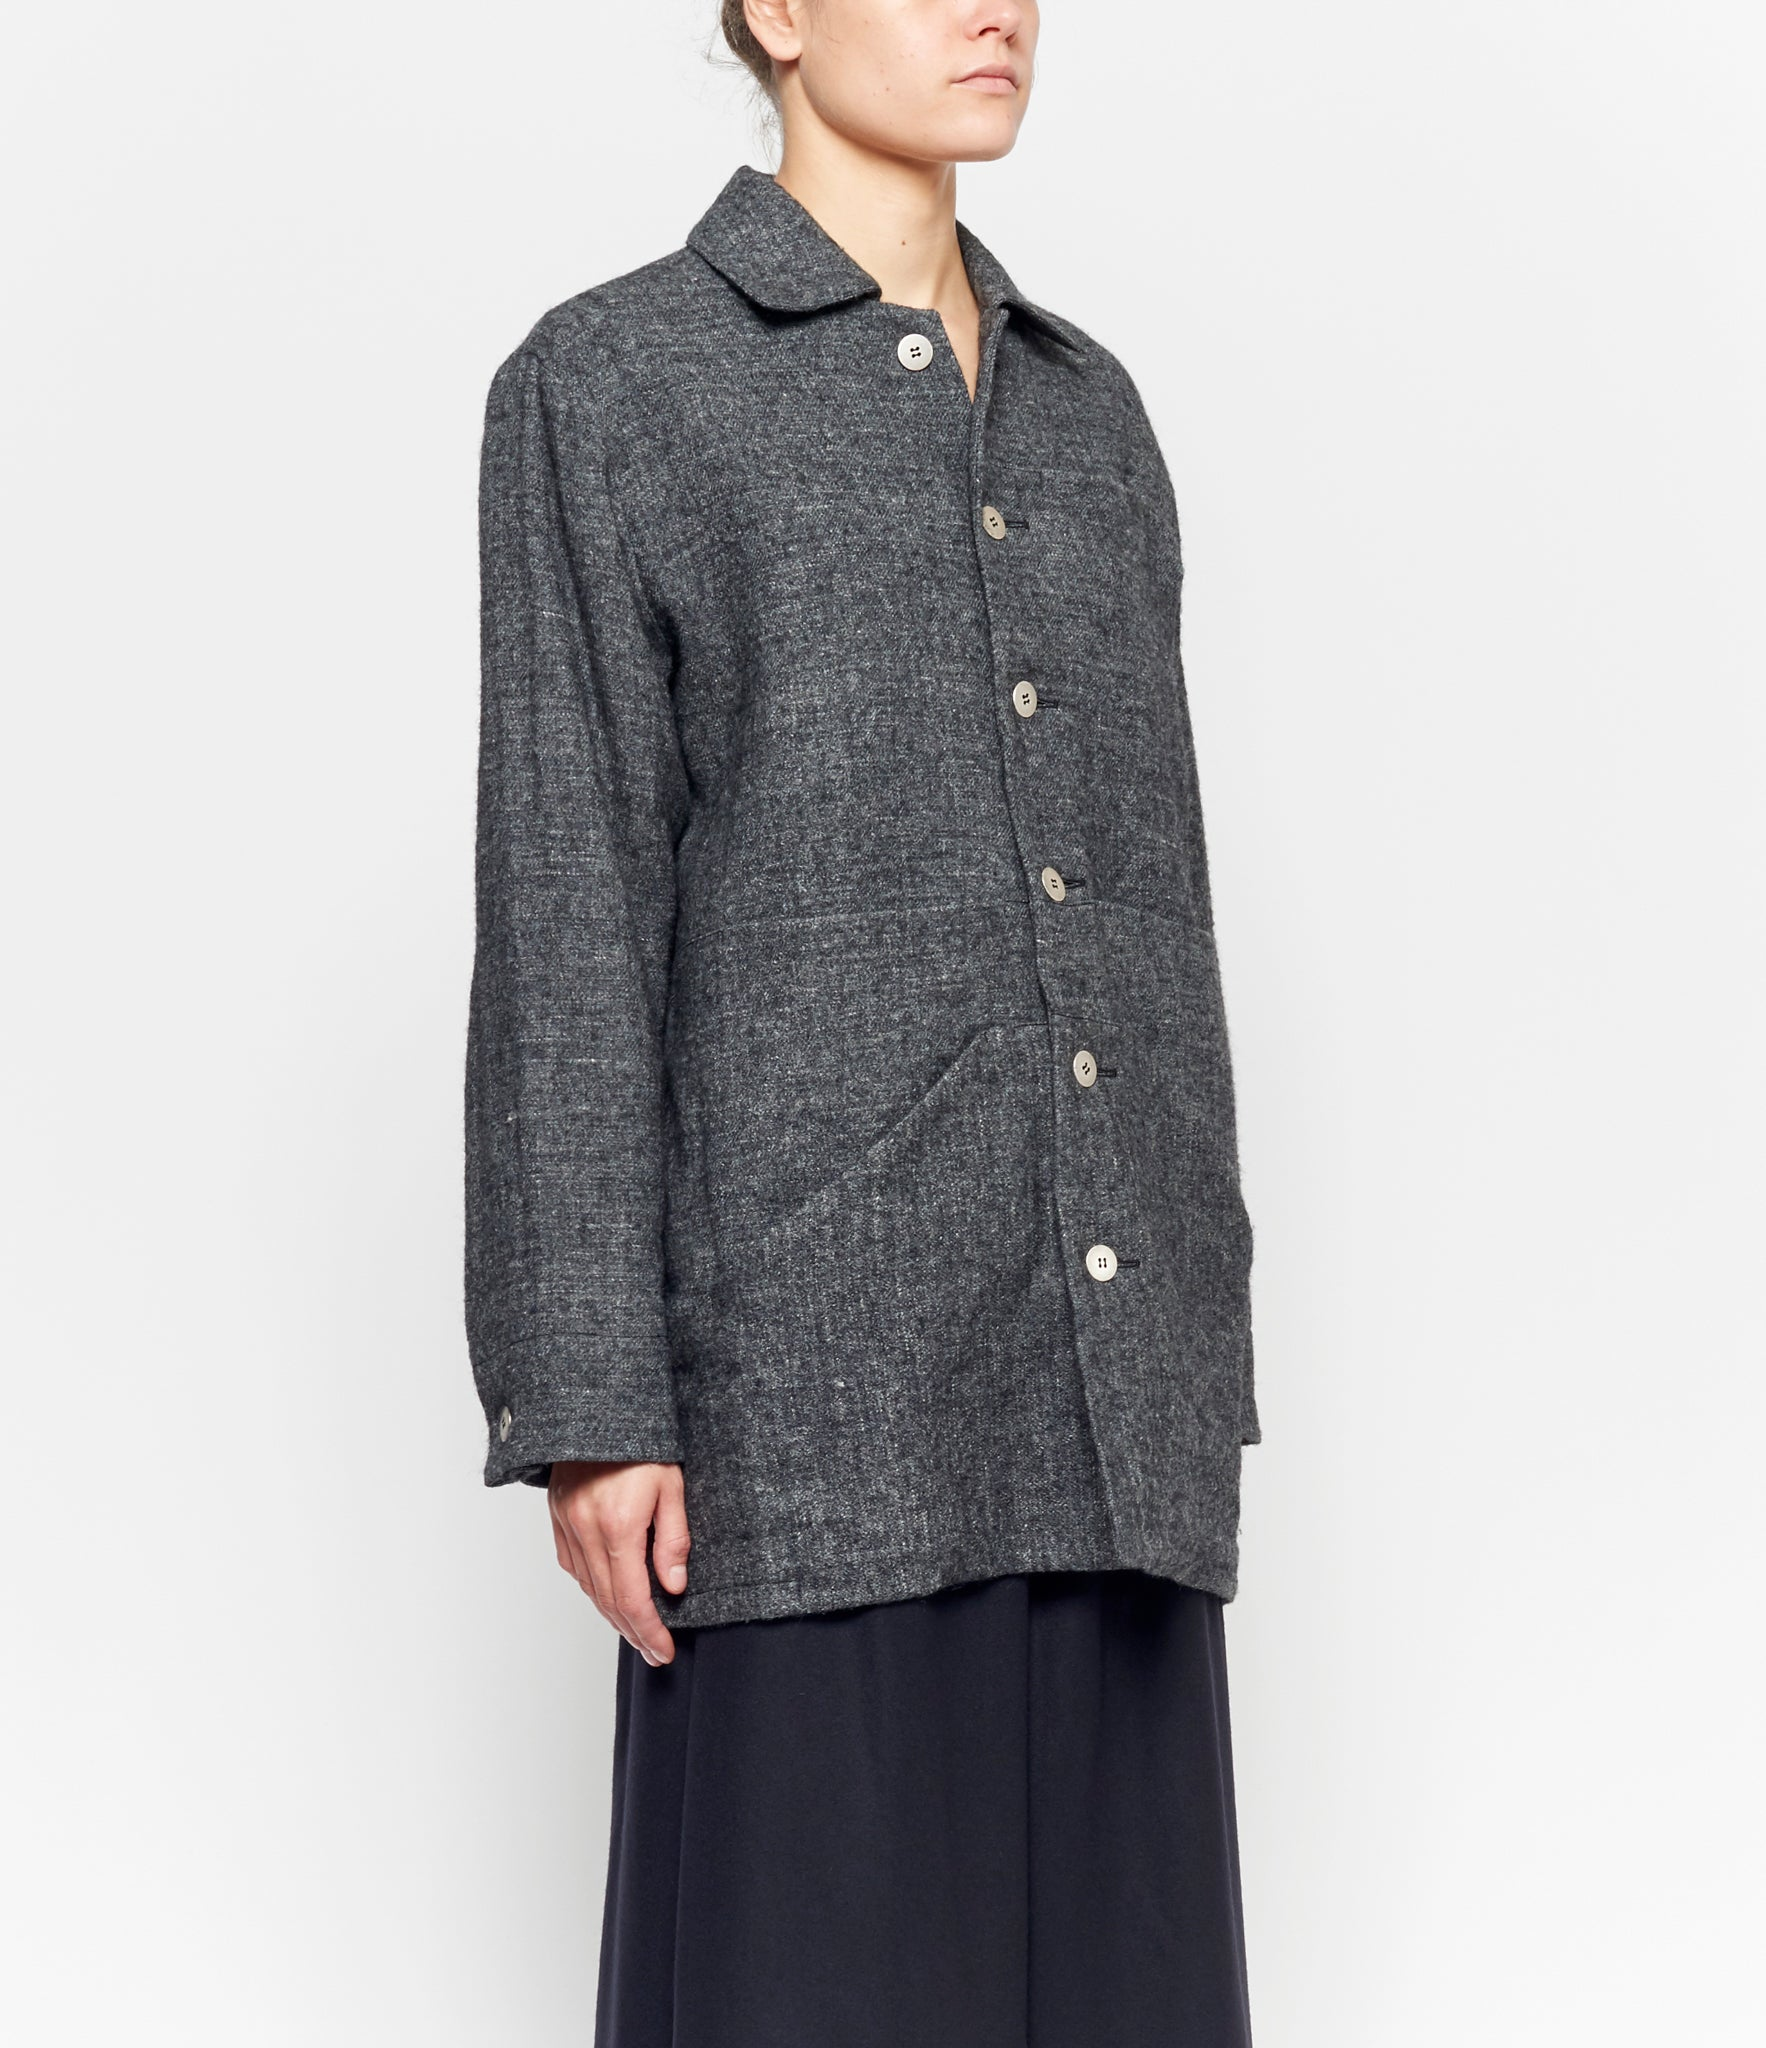 Toogood The Gamekeeper Wool Linen Jacket